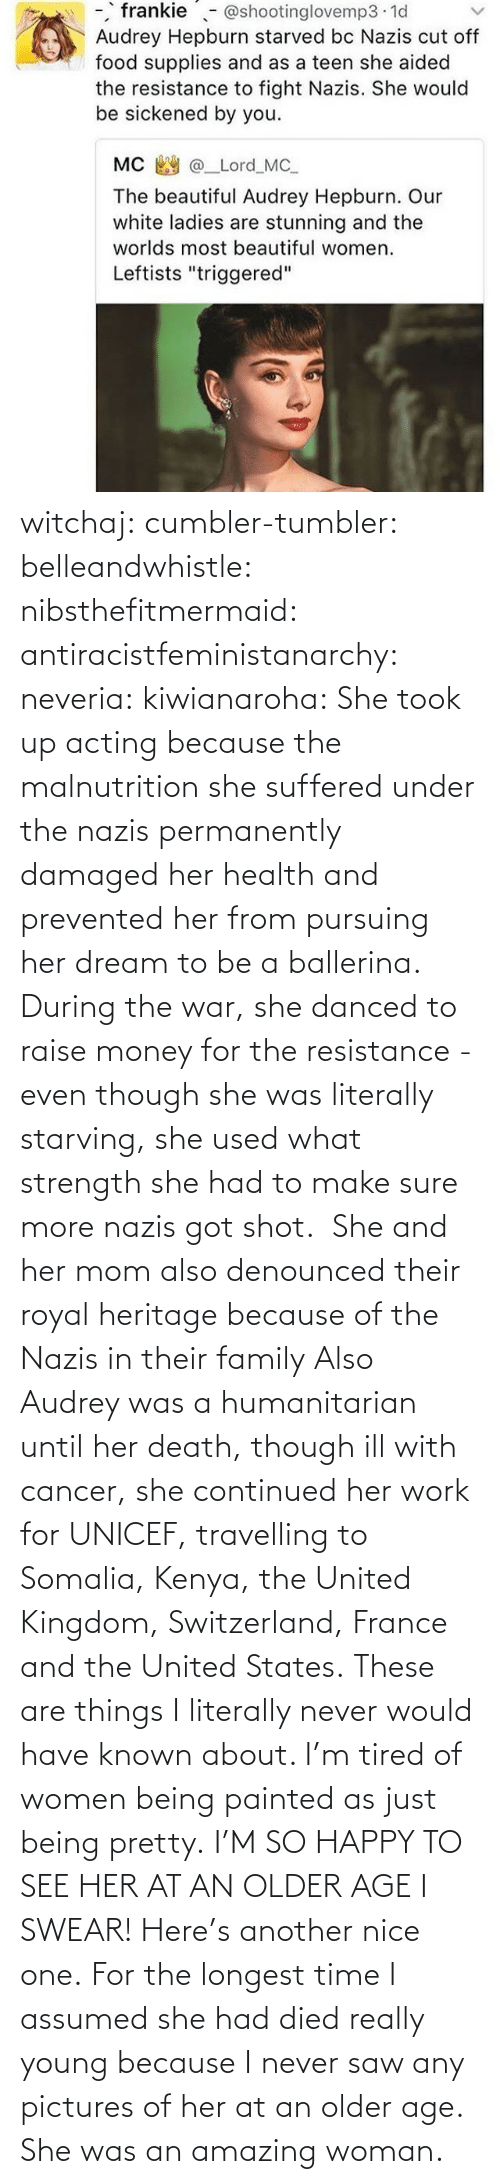 She Was: witchaj: cumbler-tumbler:  belleandwhistle:  nibsthefitmermaid:  antiracistfeministanarchy:  neveria:  kiwianaroha: She took up acting because the malnutrition she suffered under the nazis permanently damaged her health and prevented her from pursuing her dream to be a ballerina. During the war, she danced to raise money for the resistance - even though she was literally starving, she used what strength she had to make sure more nazis got shot.  She and her mom also denounced their royal heritage because of the Nazis in their family  Also Audrey was a humanitarian until her death, though ill with cancer, she continued her work for UNICEF, travelling to Somalia, Kenya, the United Kingdom, Switzerland, France and the United States.  These are things I literally never would have known about. I'm tired of women being painted as just being pretty.  I'M SO HAPPY TO SEE HER AT AN OLDER AGE I SWEAR!  Here's another nice one.   For the longest time I assumed she had died really young because I never saw any pictures of her at an older age.  She was an amazing woman.